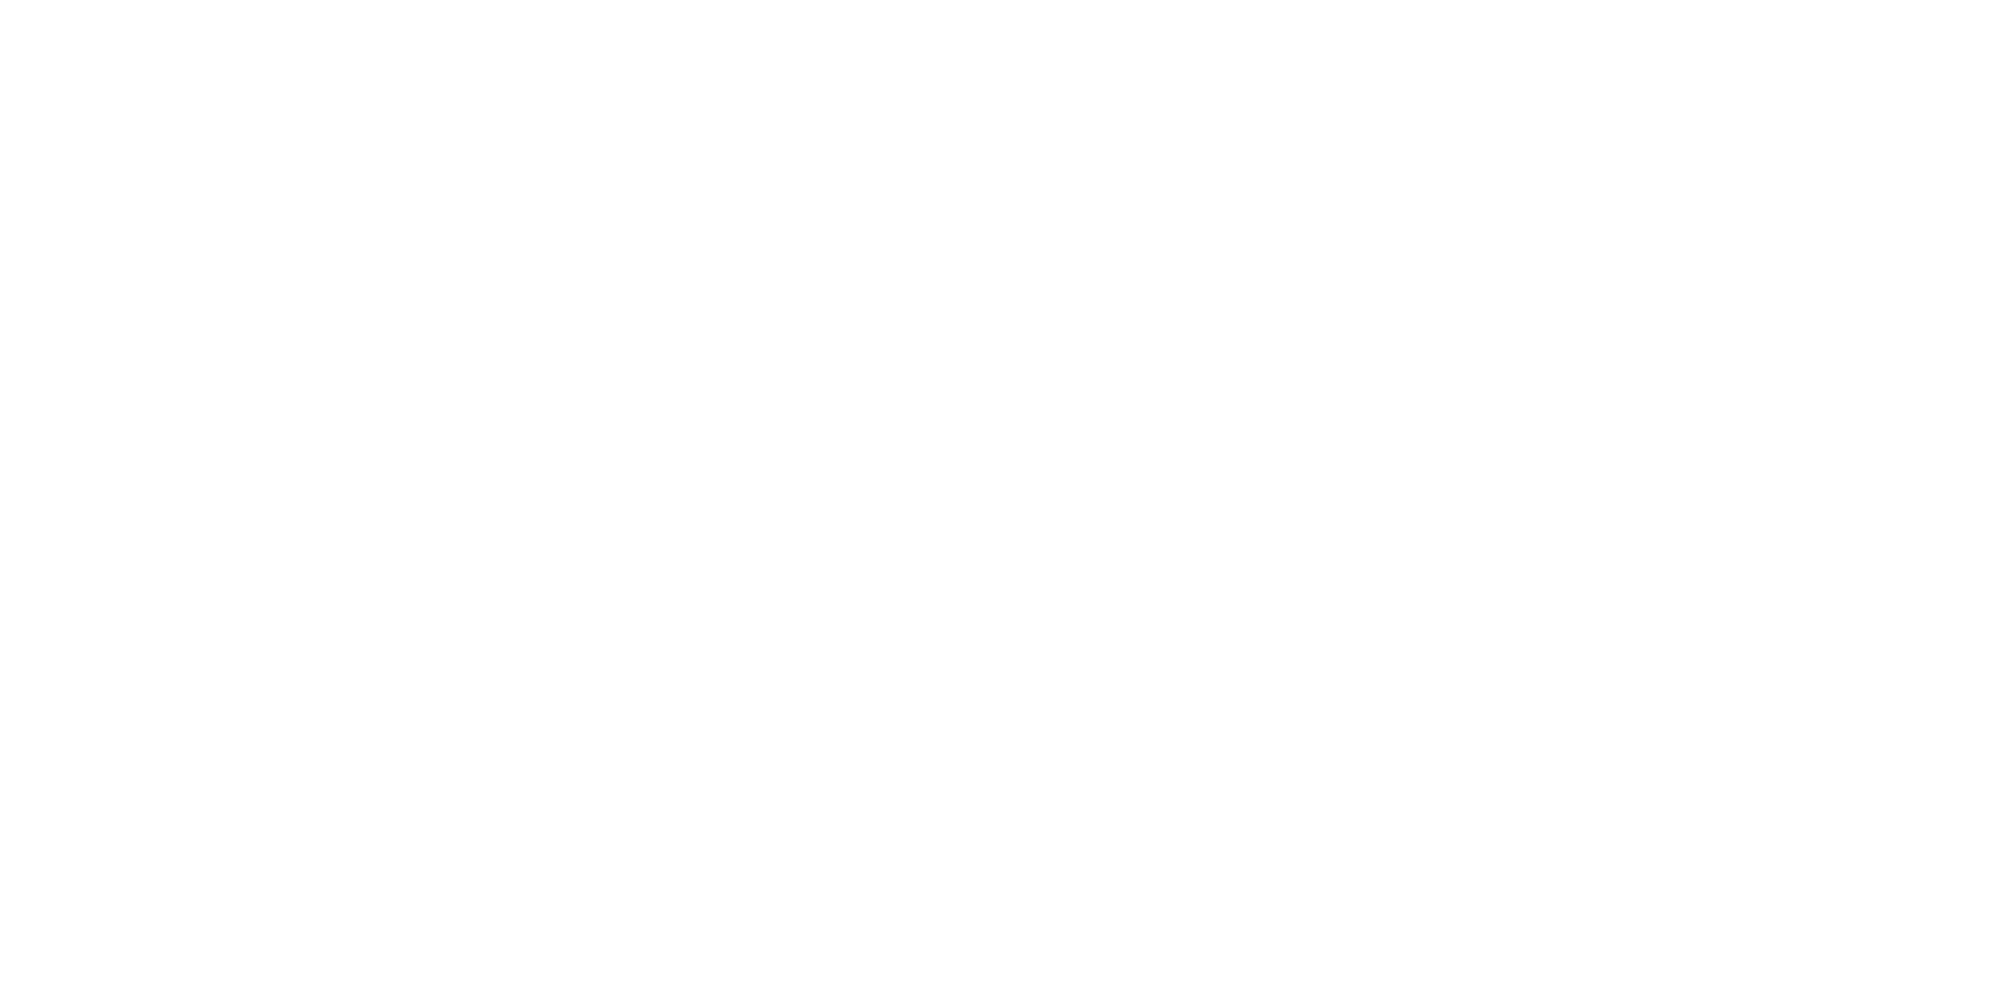 Civic and professional immersion. Handshake clipart clasped hand